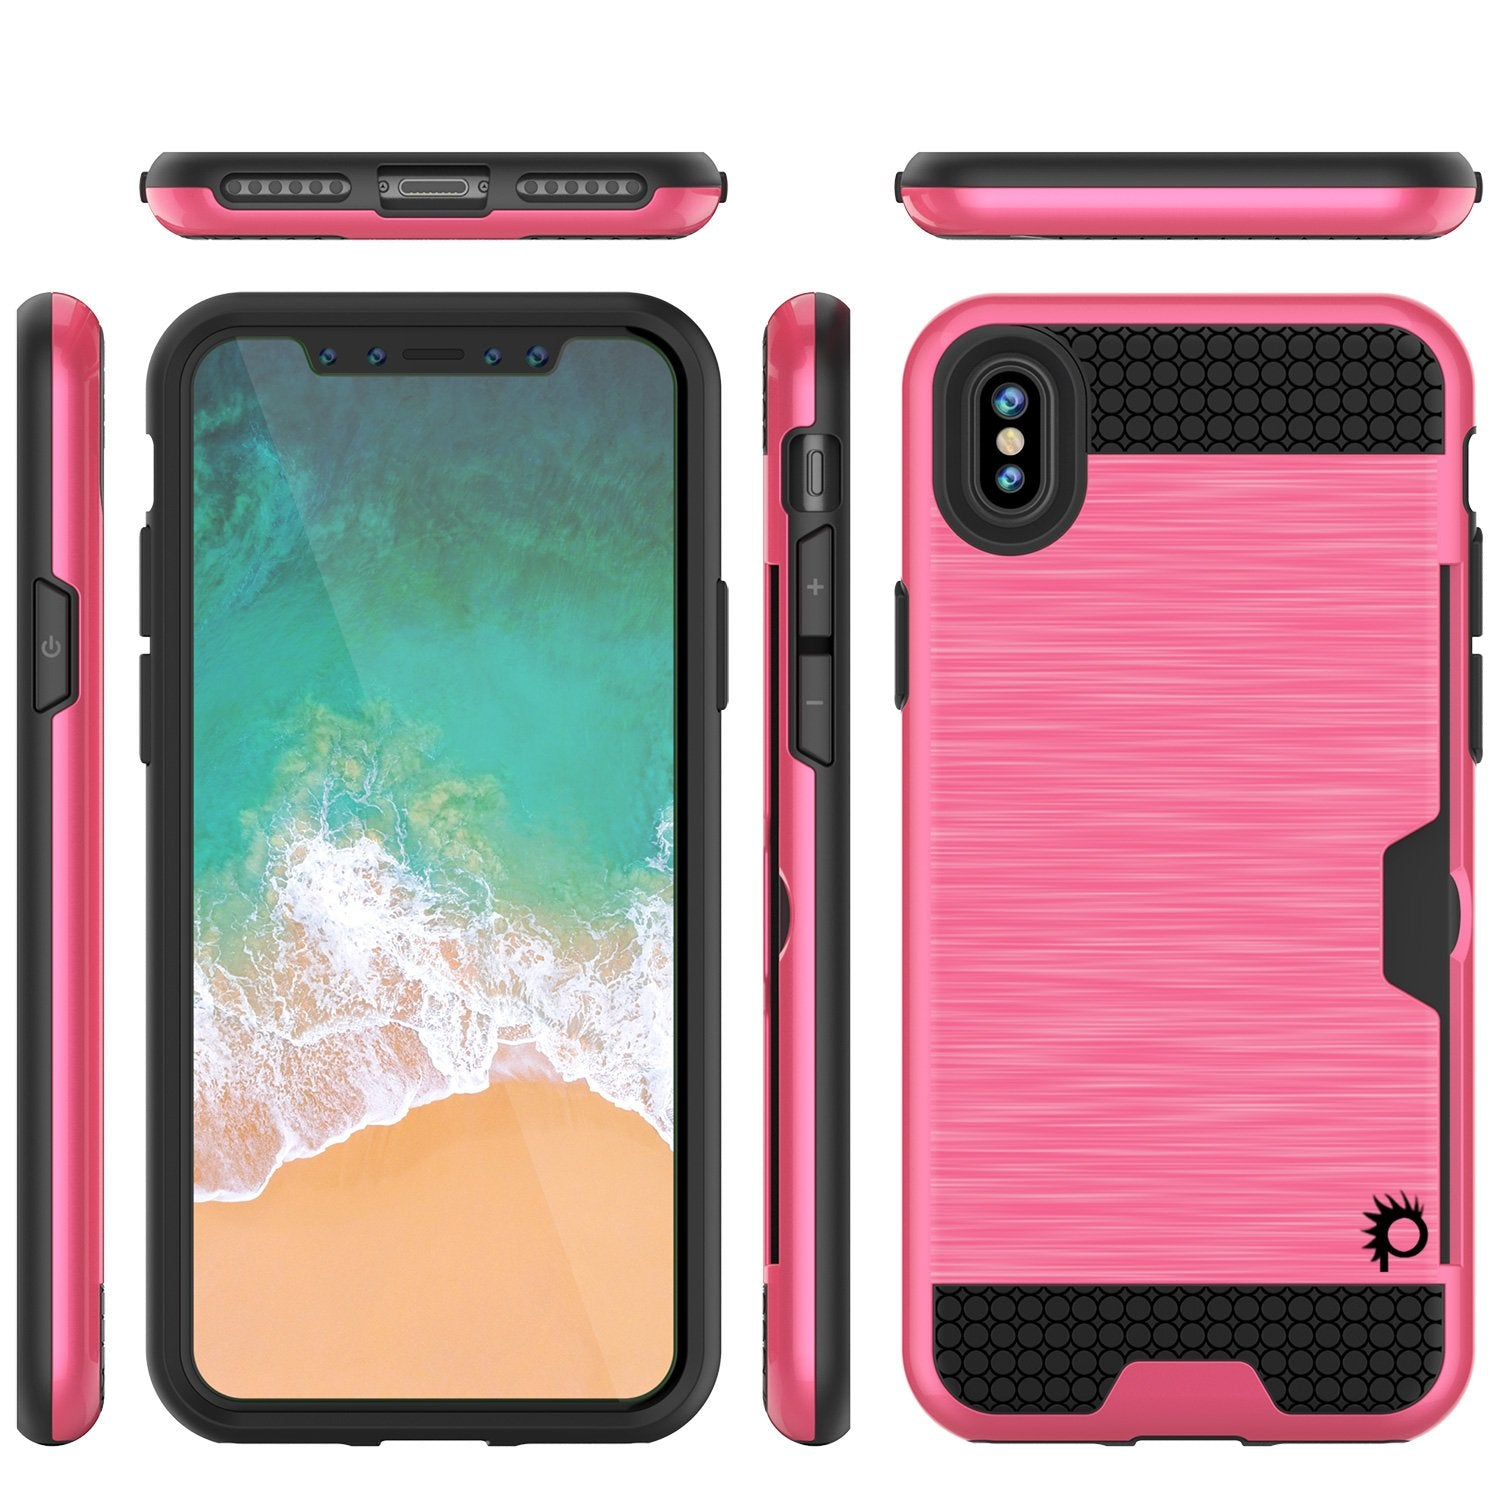 iPhone X Case, PUNKcase [SLOT Series] Slim Fit Dual-Layer Armor Cover & Tempered Glass PUNKSHIELD Screen Protector for Apple iPhone X [Pink]